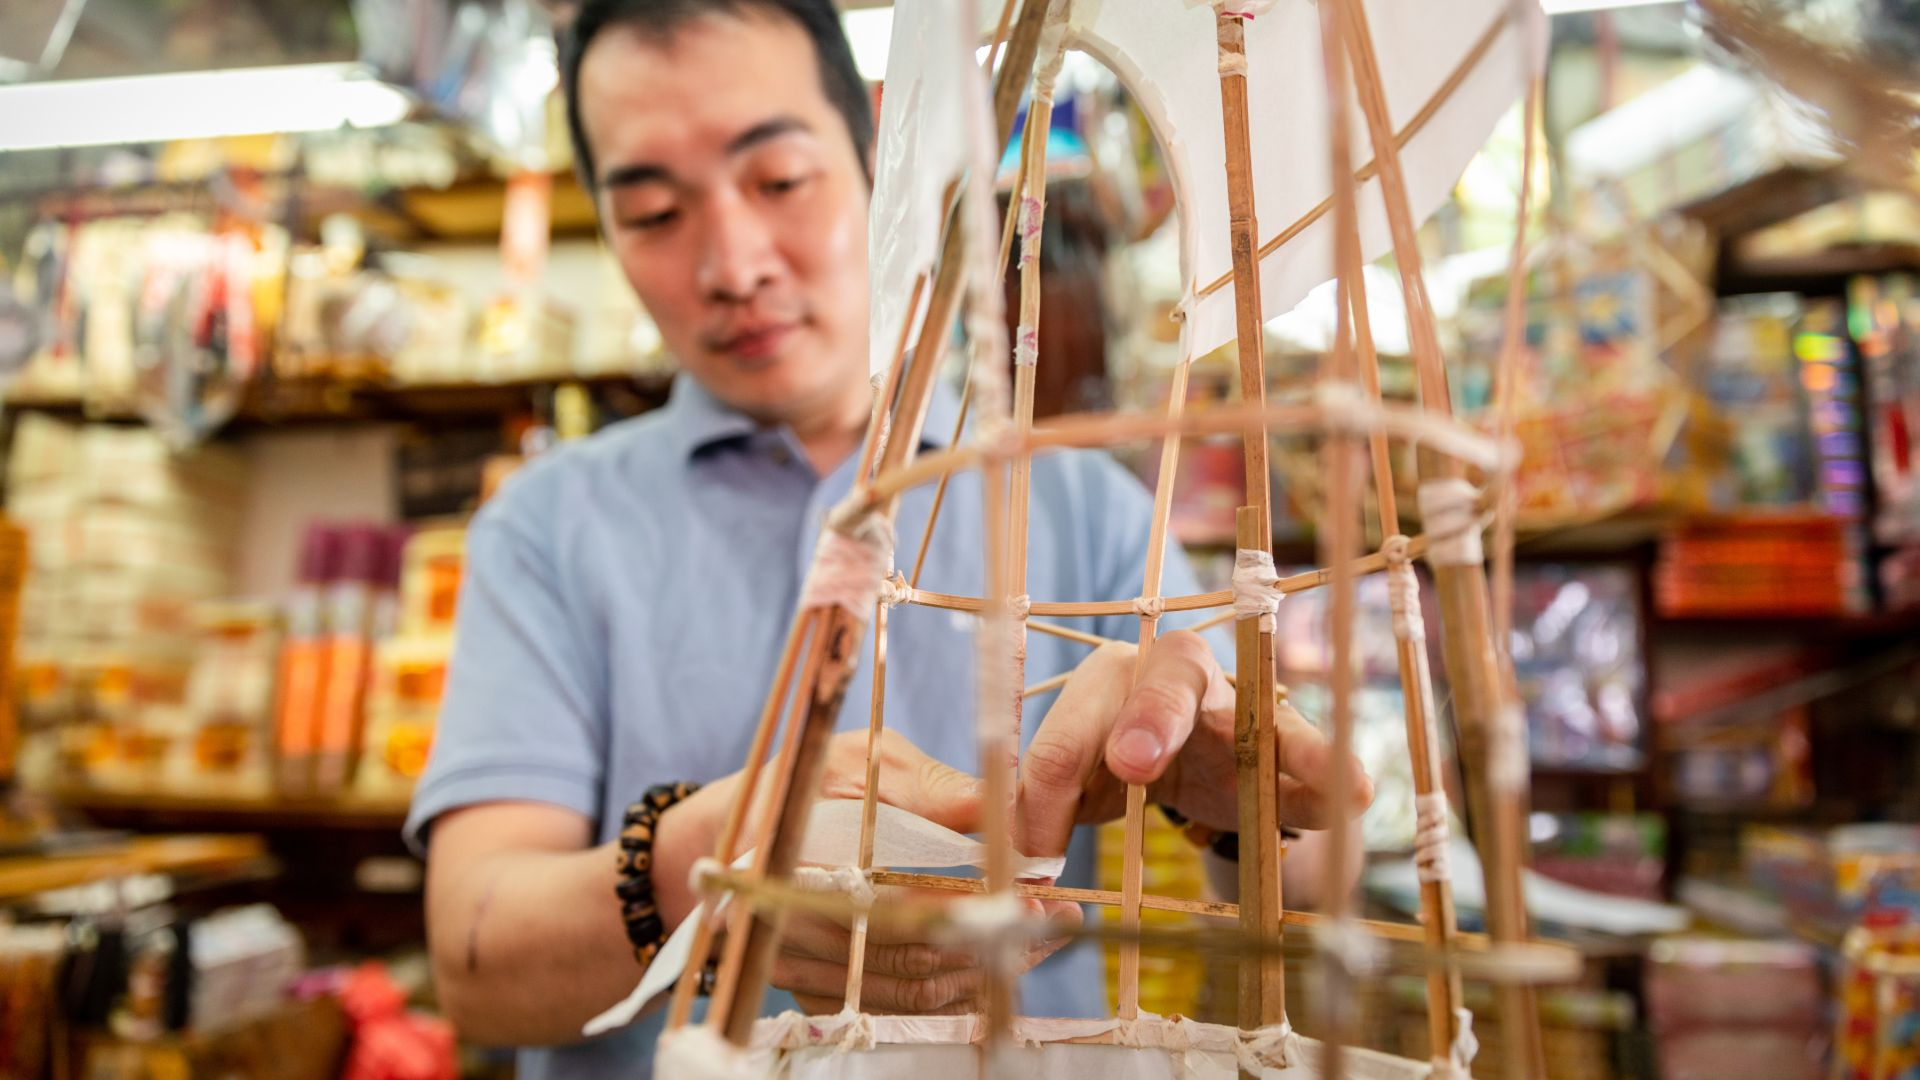 A culture of creativity in Sham Shui Po